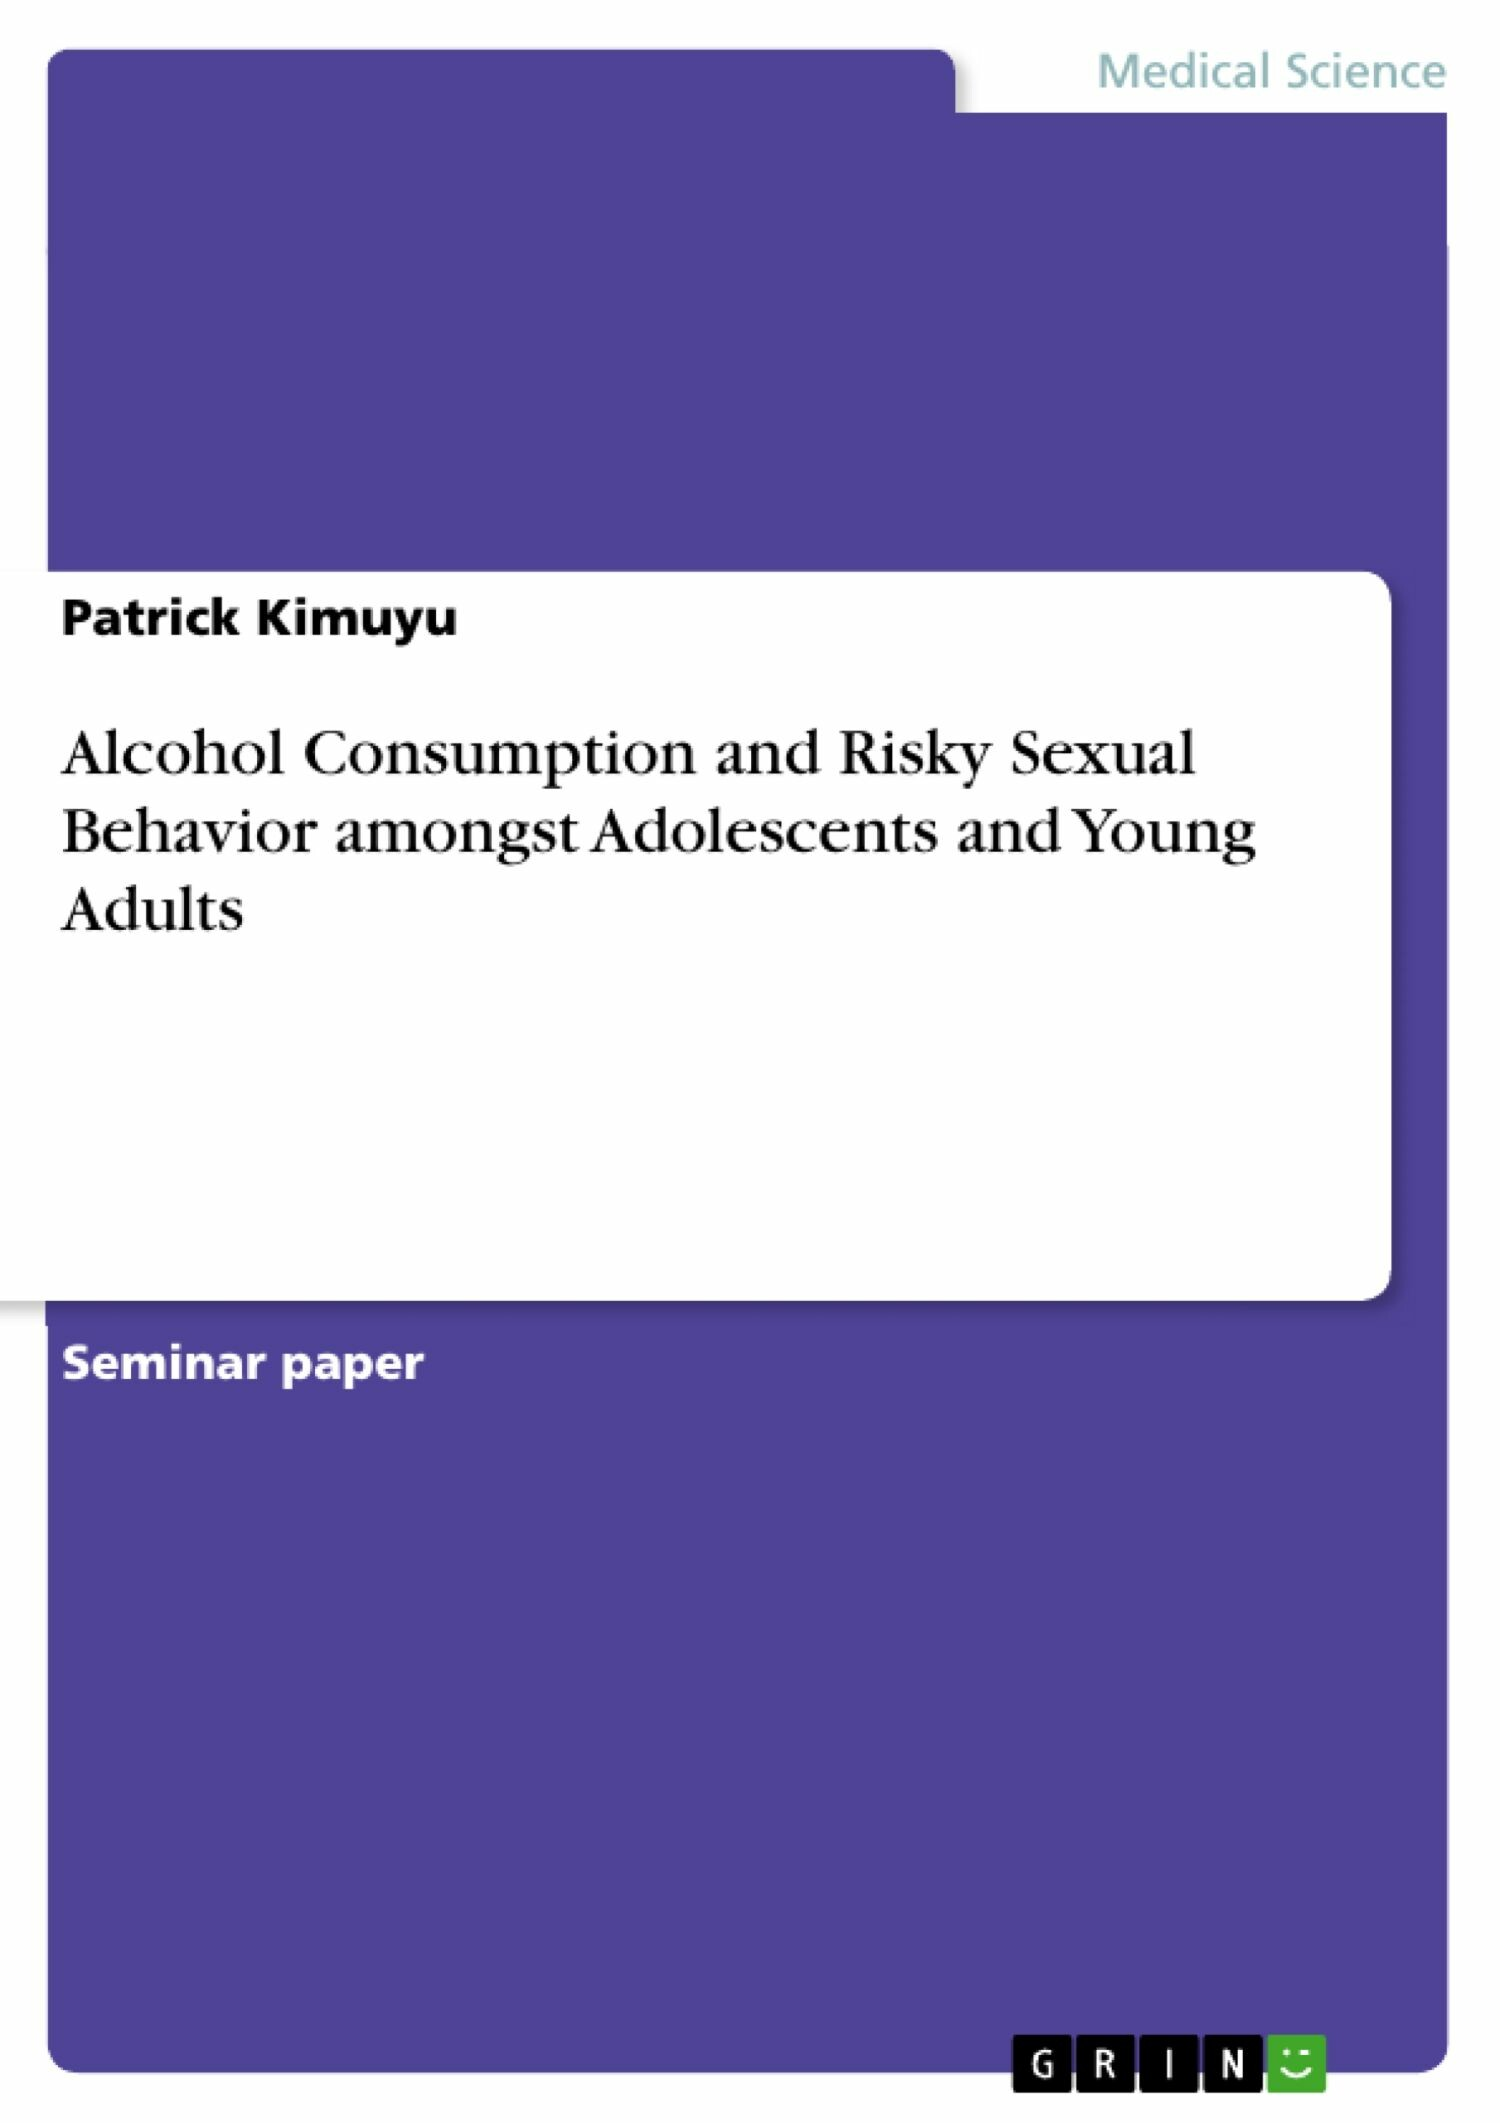 Alcohol Consumption and Risky Sexual Behavior amongst Adolescents and Young Adults